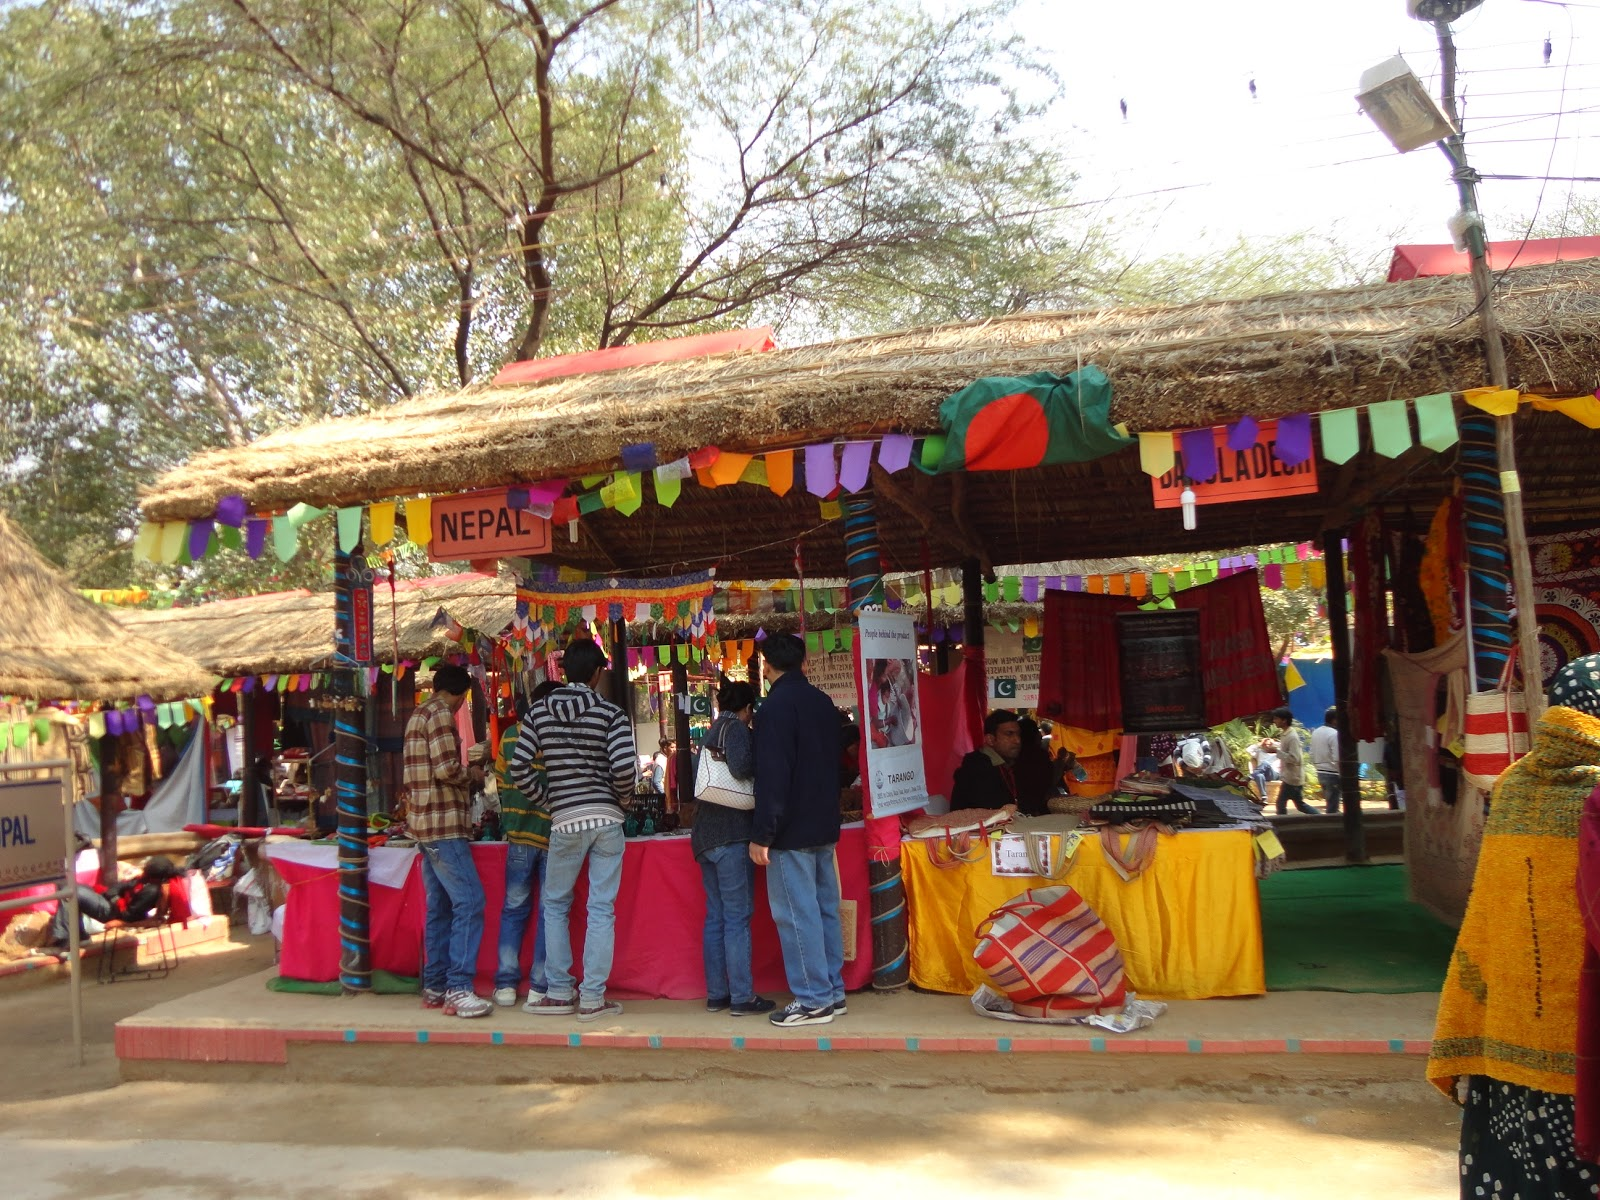 The Nepal Stall at the Surajkund Crafts Mela,India